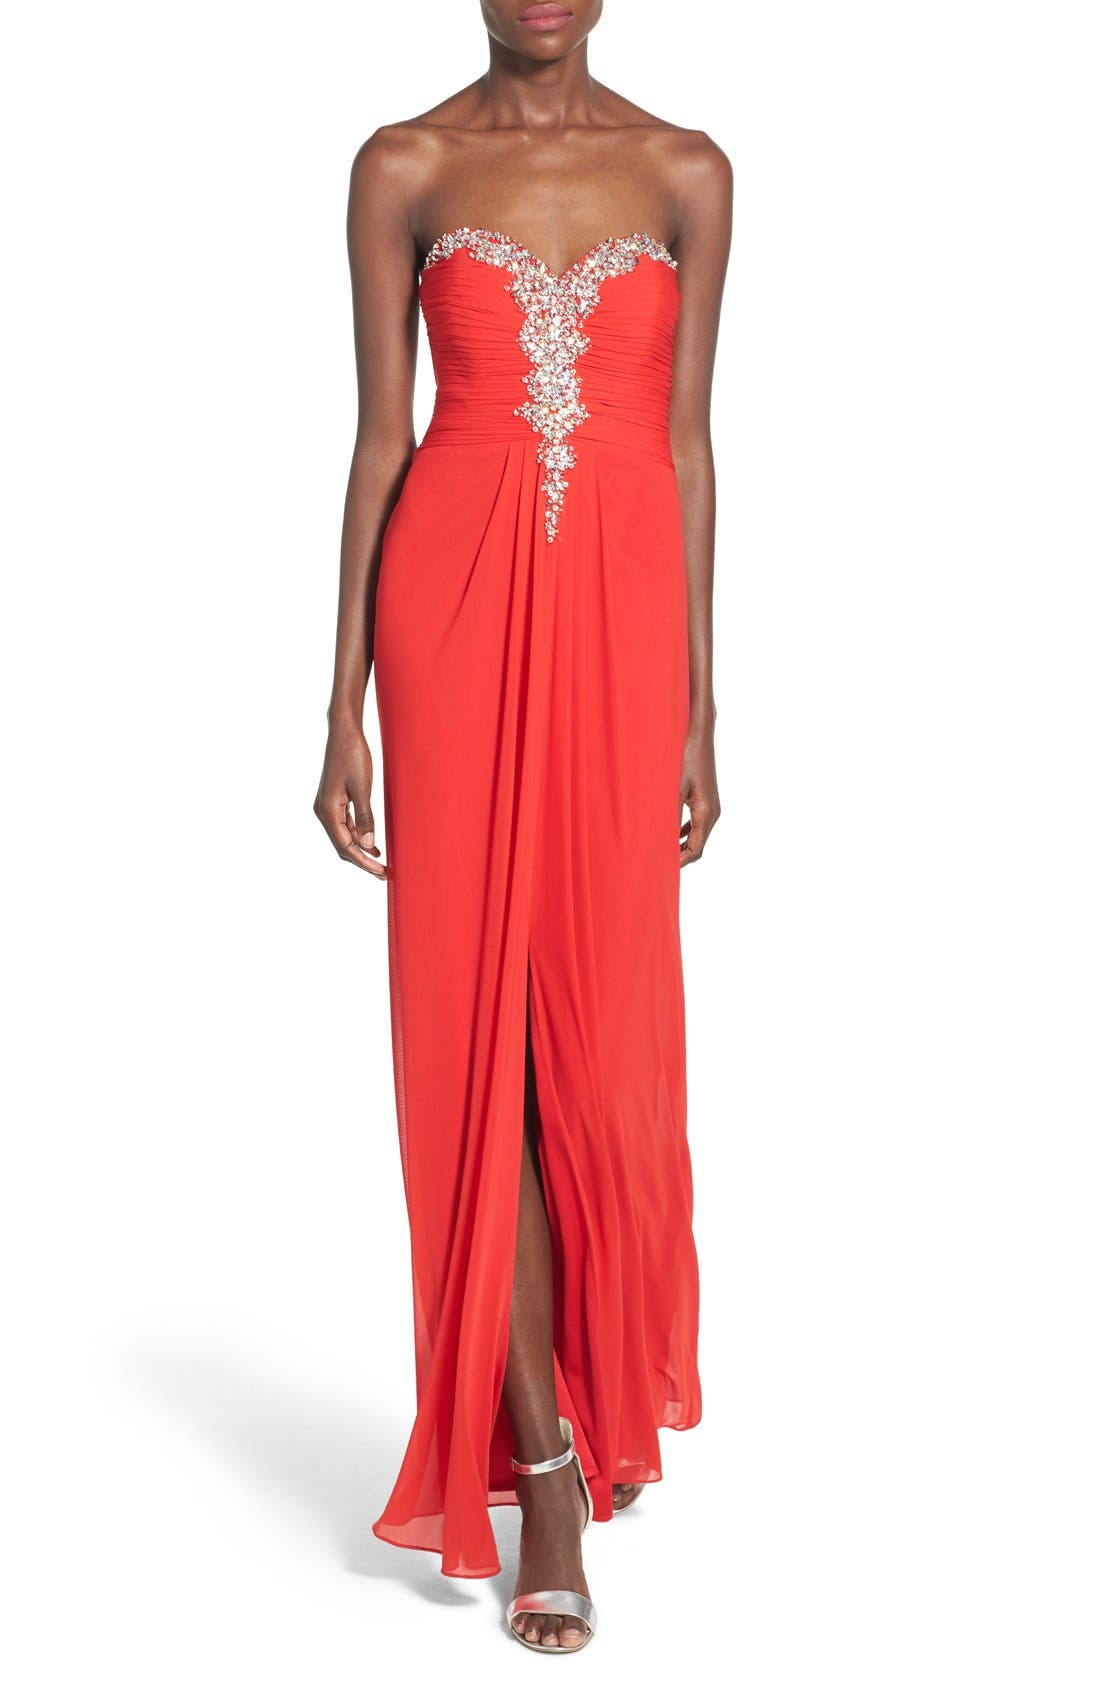 BLONDIE NITES, Blondie Nights Embellished Strapless Gown, Main thumbnail 1, color, 602